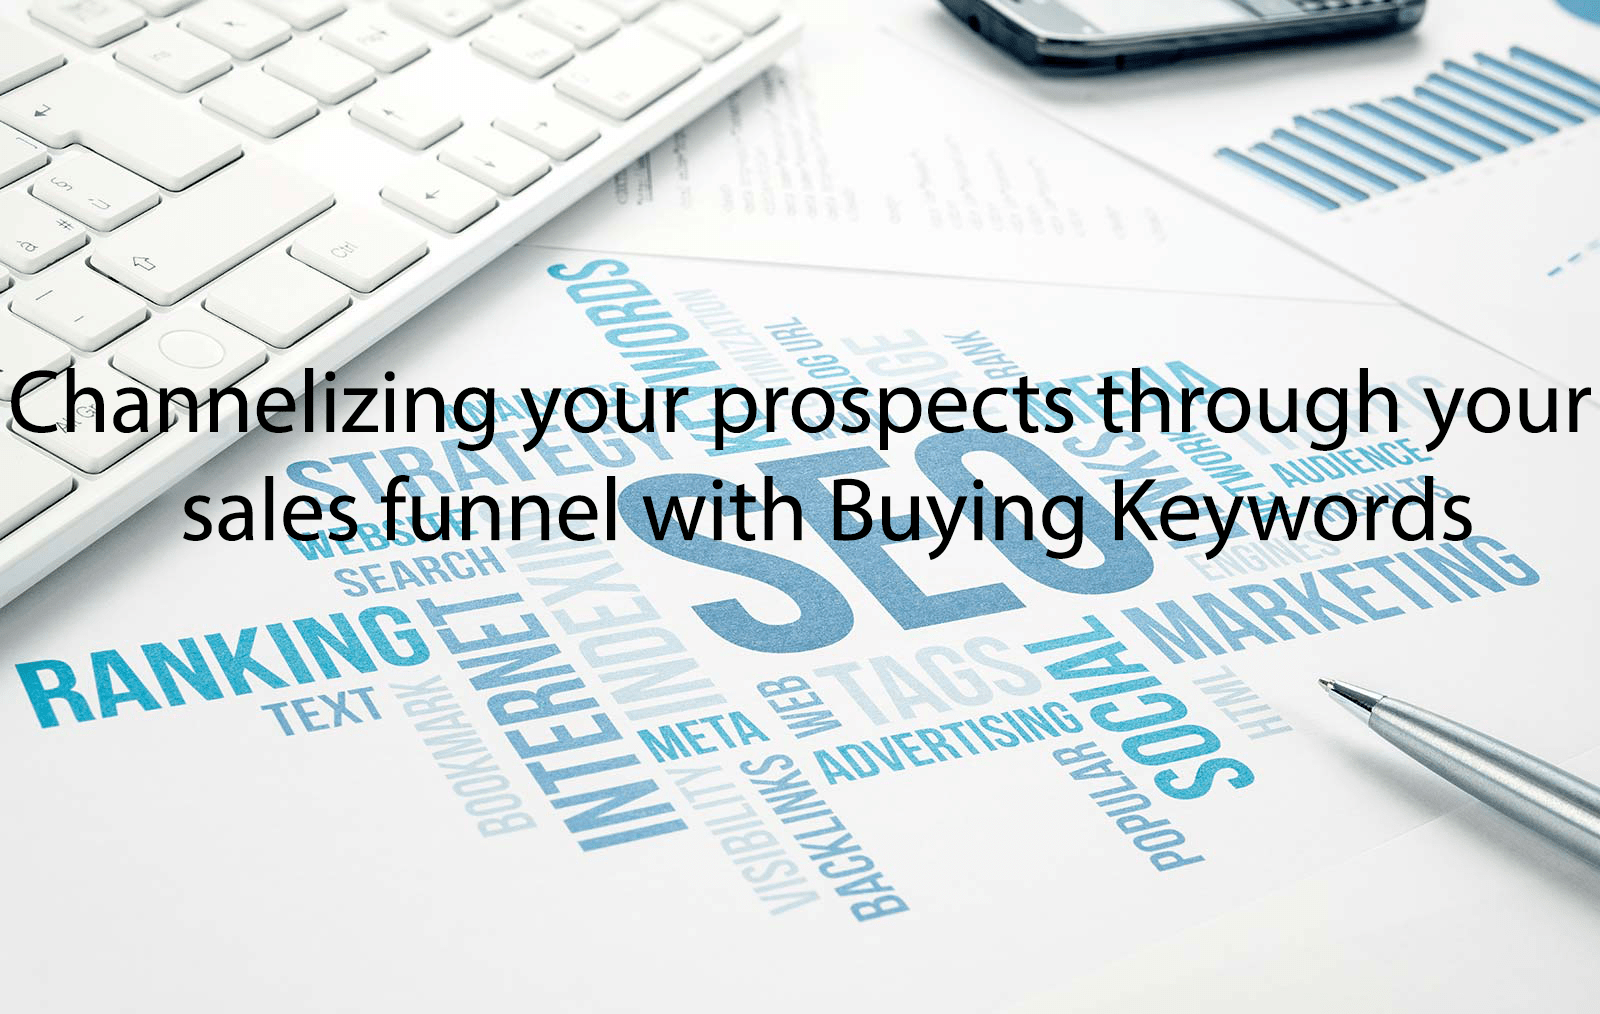 Channelizing your prospects through your sales funnel with Buying Keywords